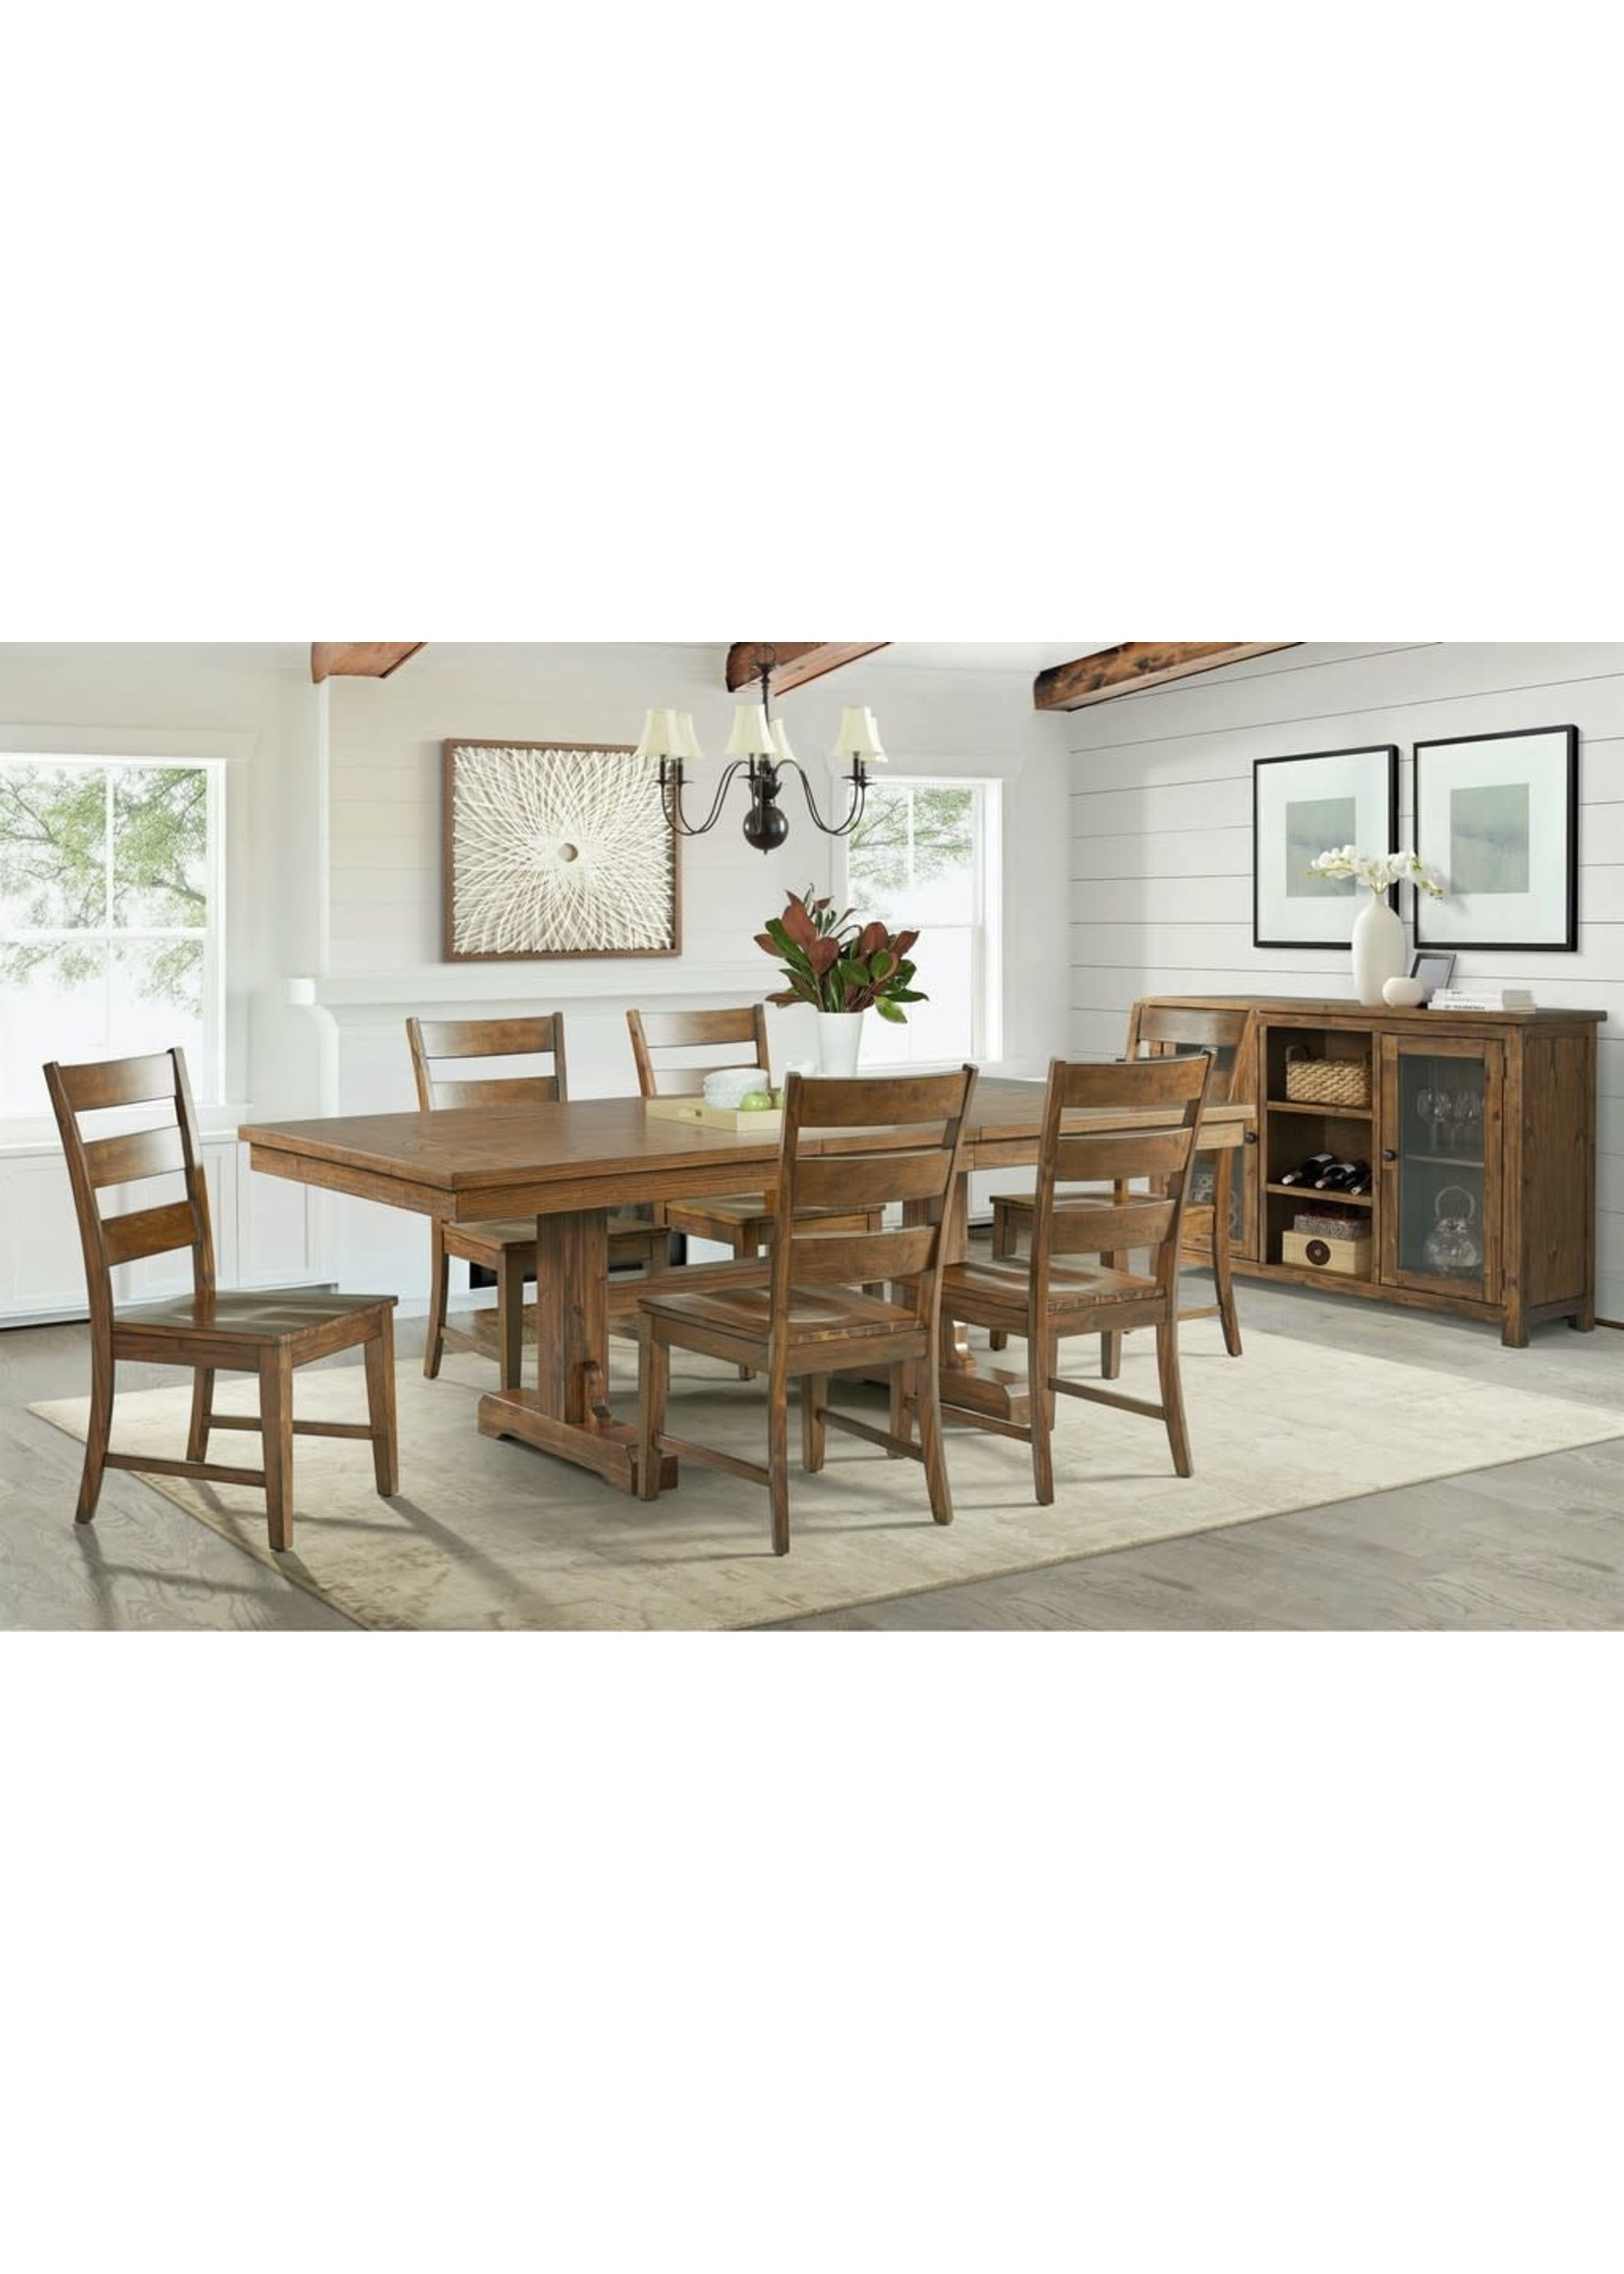 ELEMENTS SILAS DINING TABLE W/ EXTENSION DARK WOOD FINISH